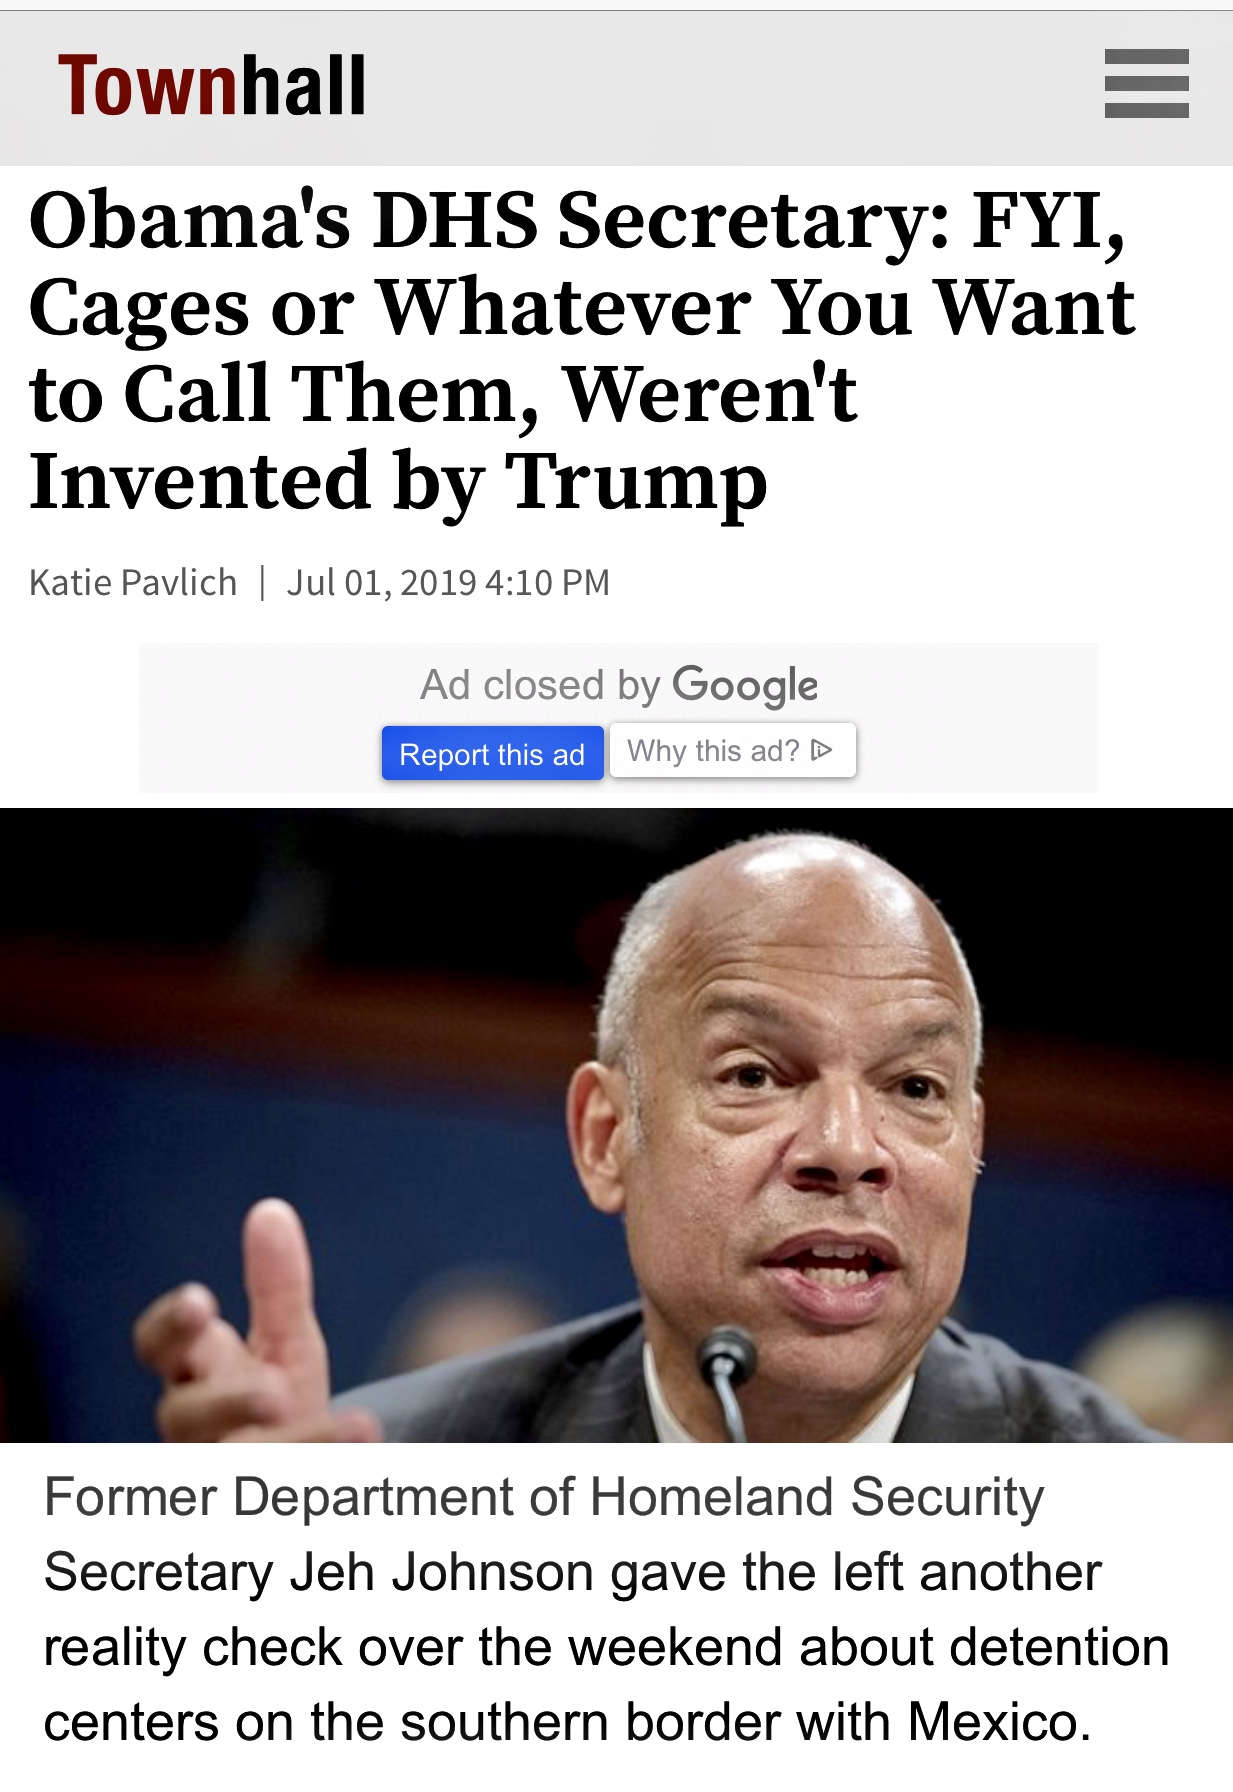 Obama's DHS Secretary: FYI, Cages or Whatever You Want to Call Them, Weren't Invented by Trump